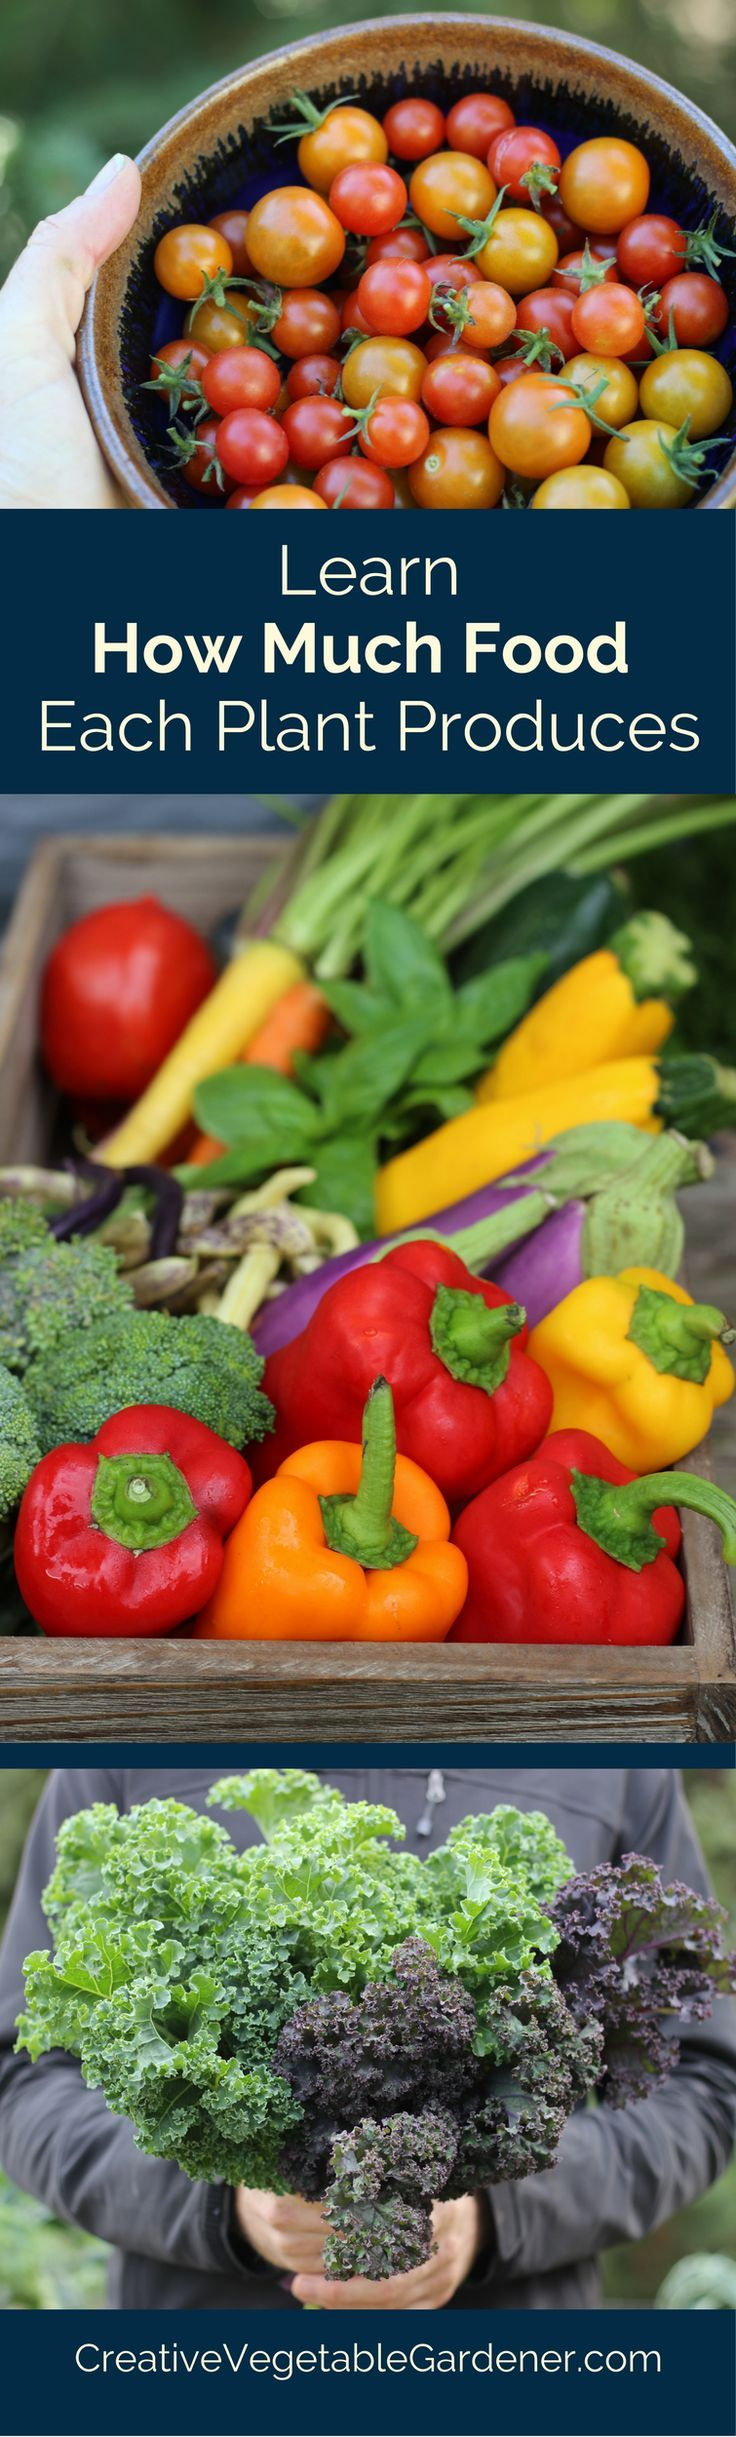 When you know how much food each vegetable produces it helps you decide whether you want to grow it in your garden.